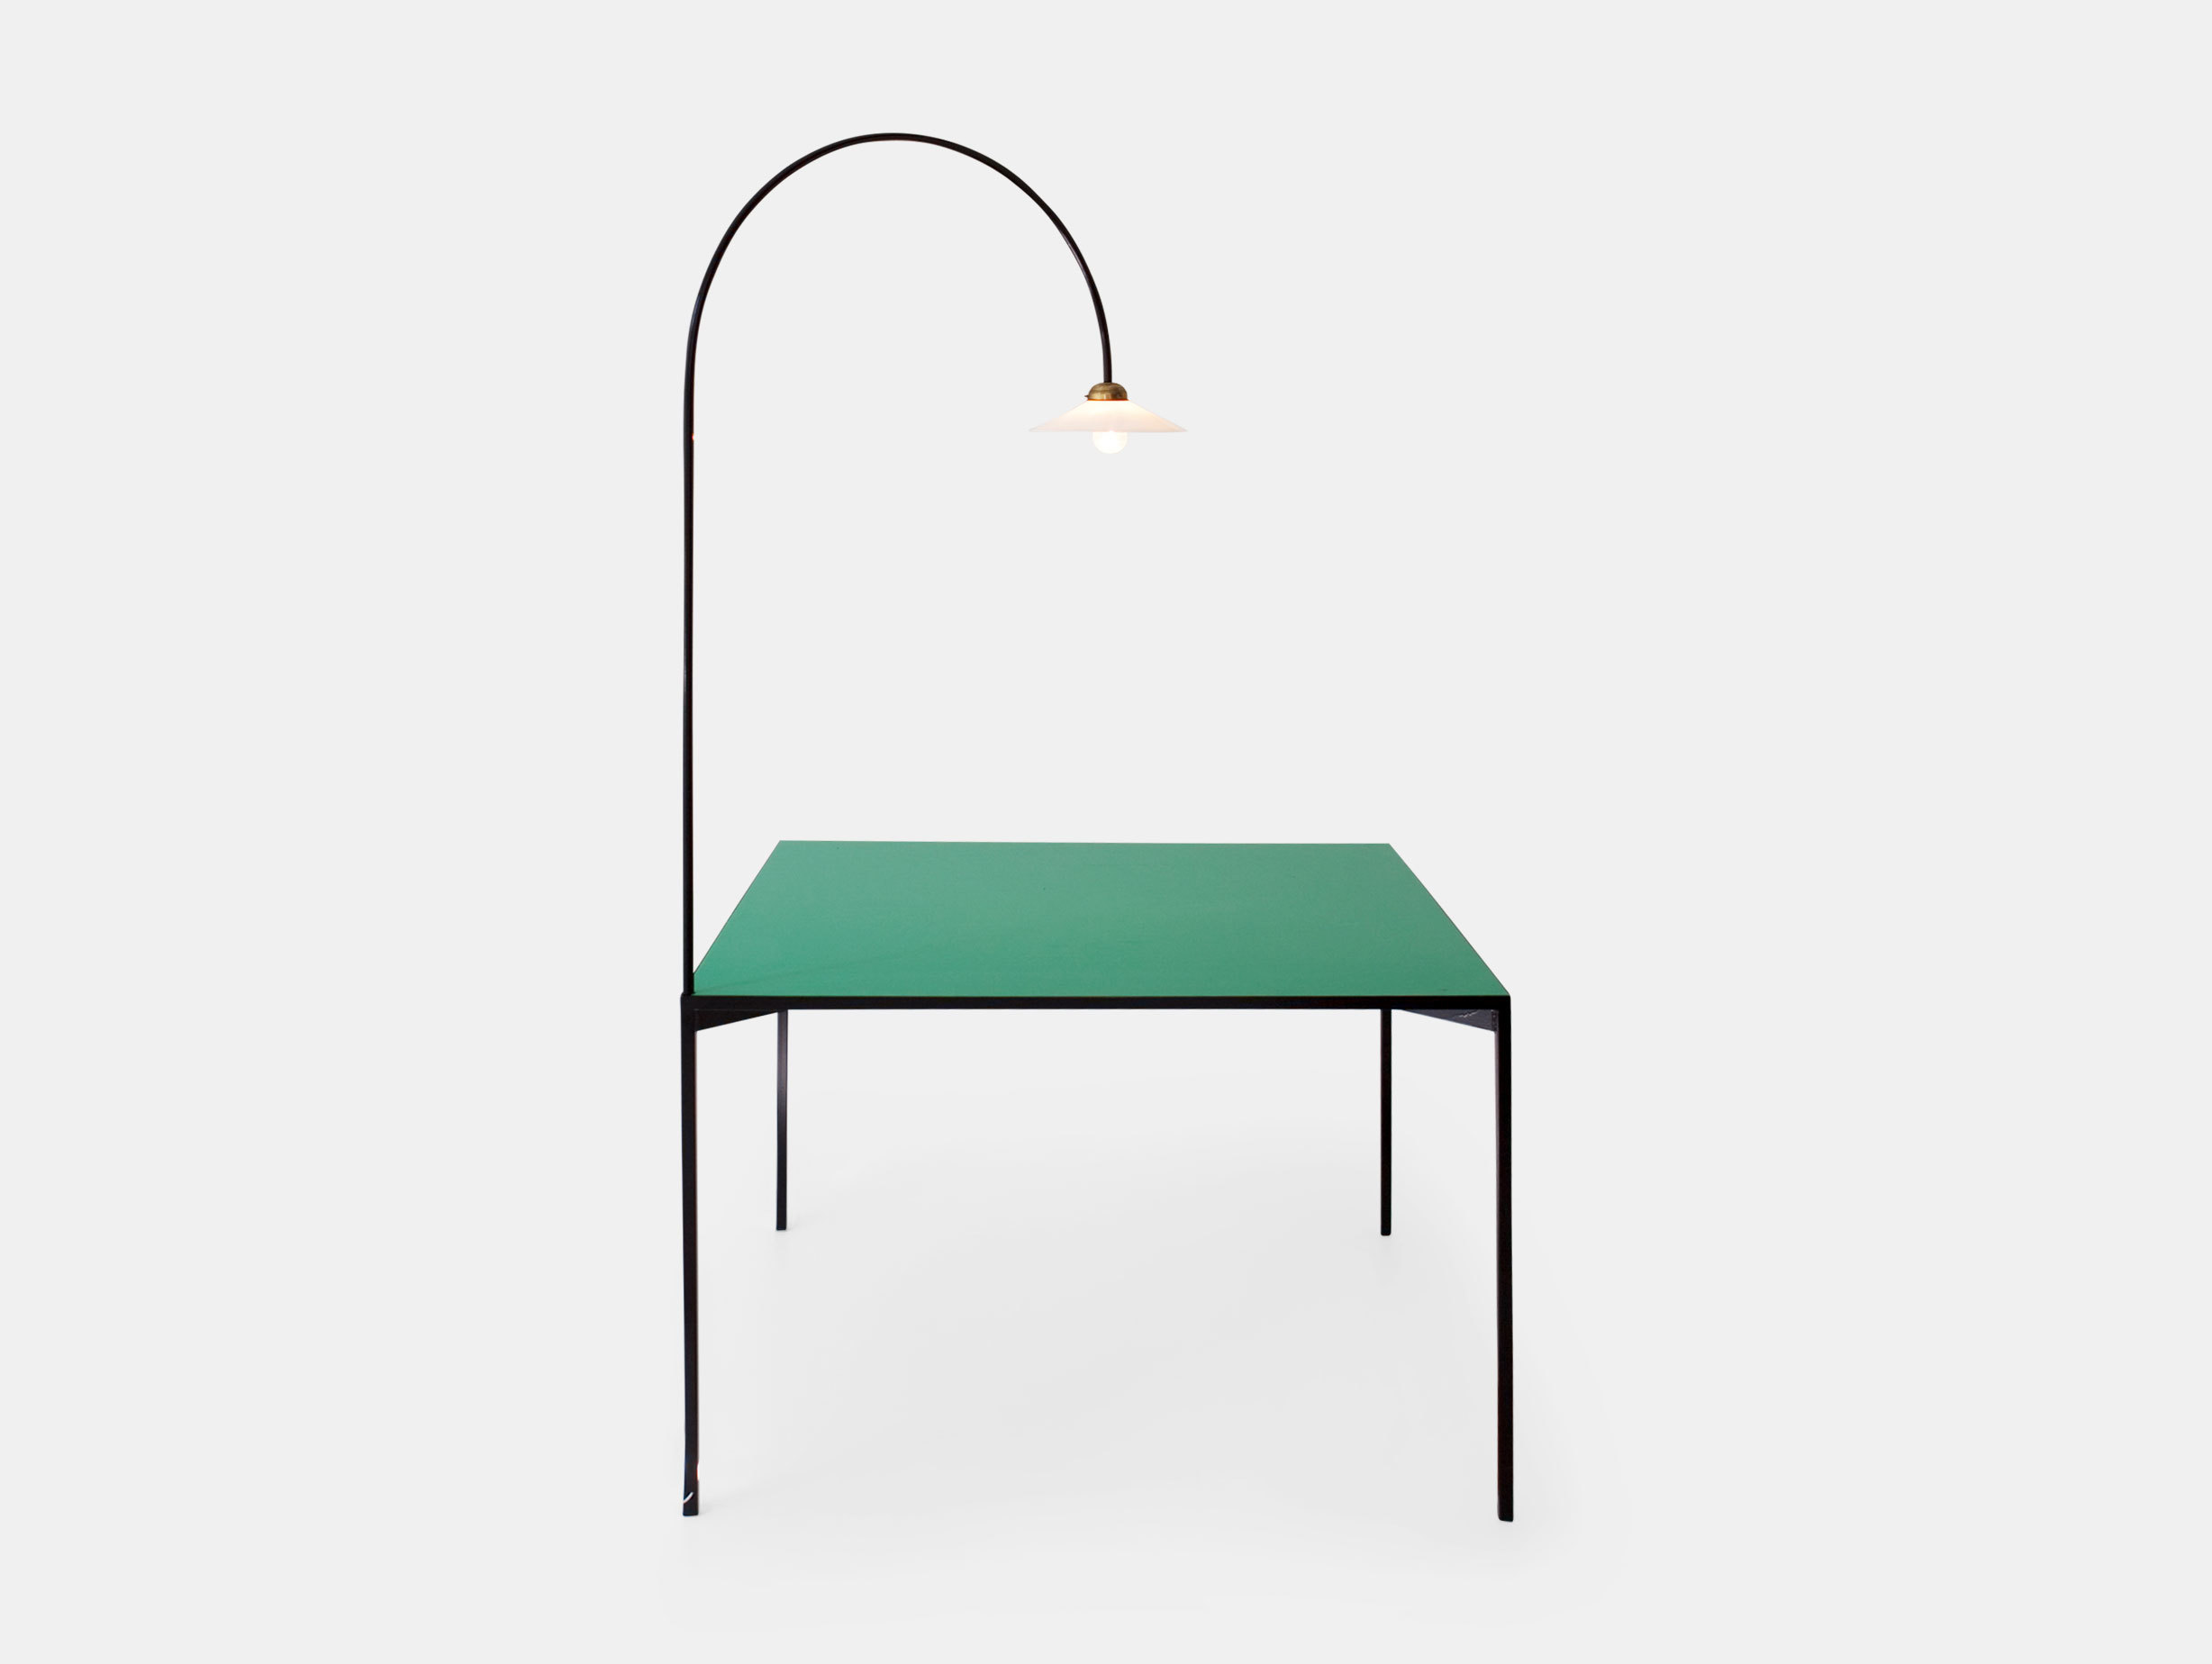 Table + Lamp image 1